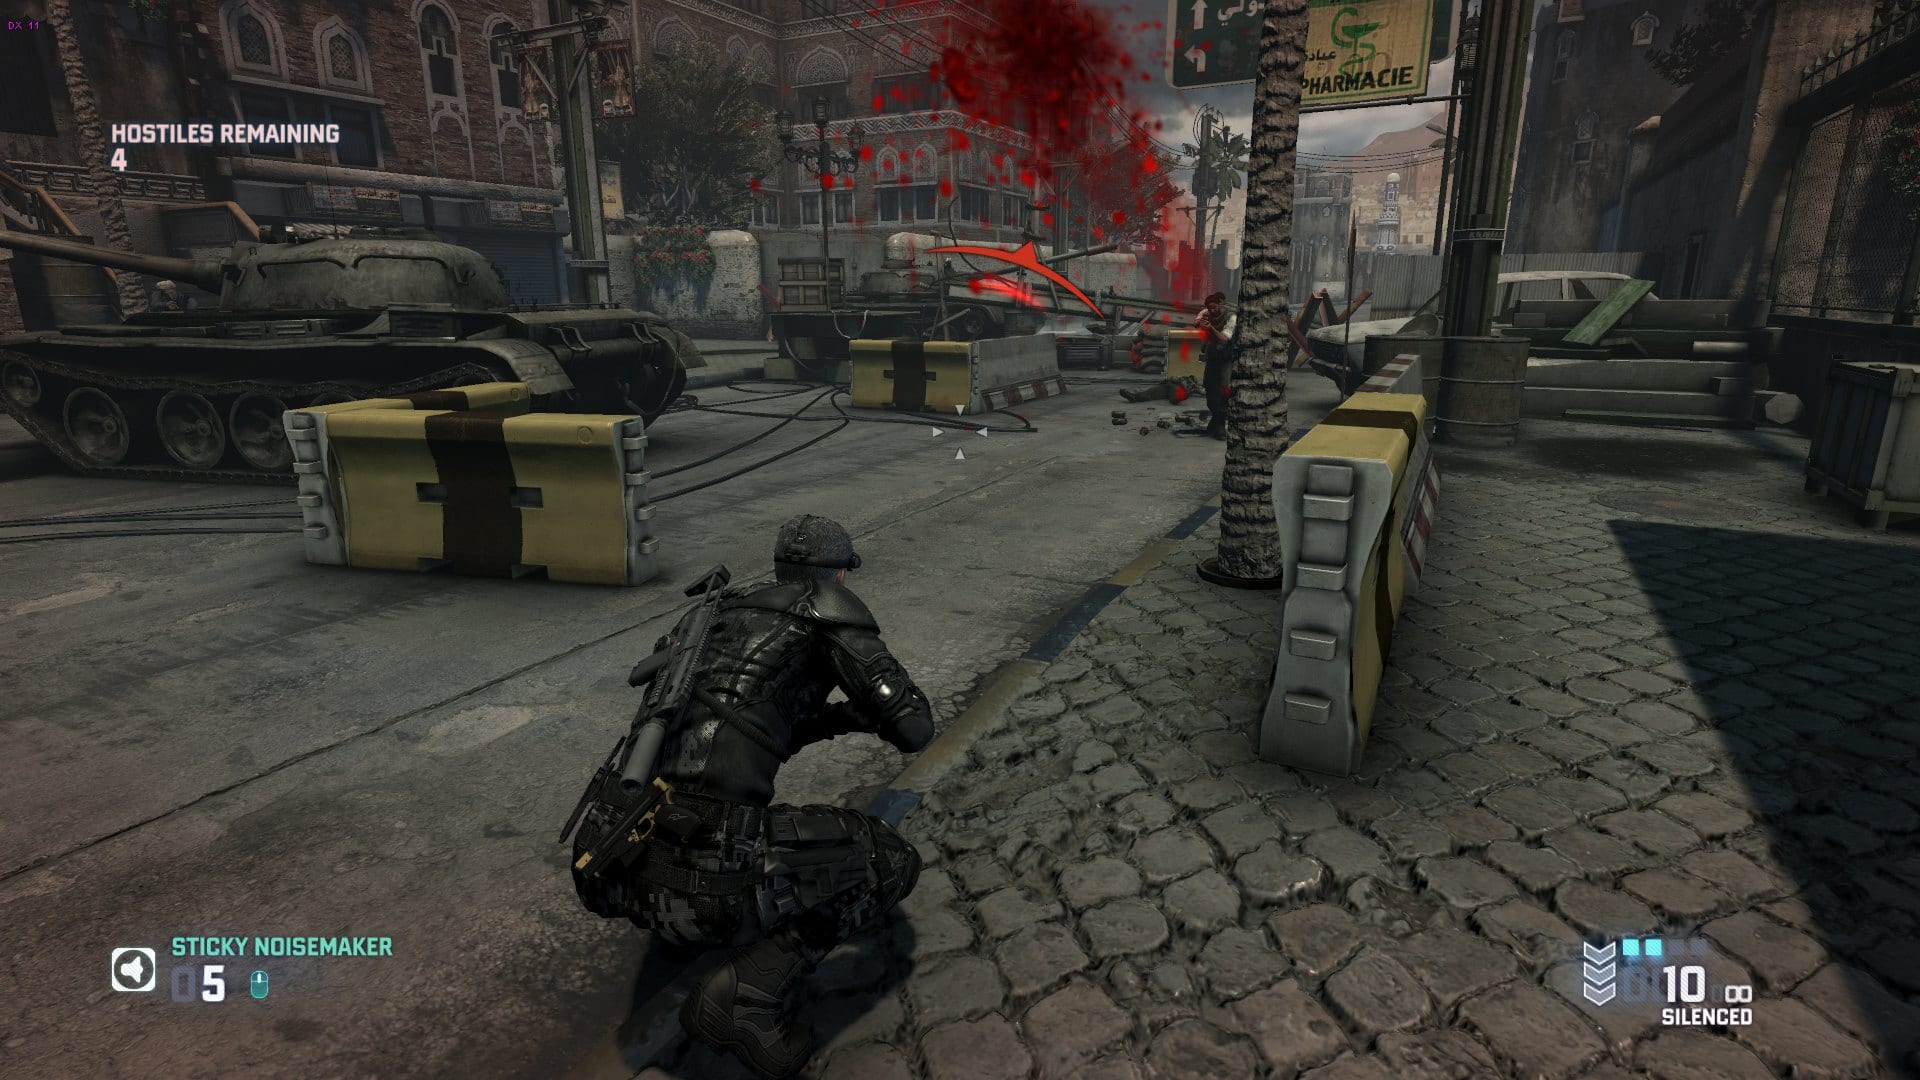 tom-clancys-splinter-cell-blacklist-screenshot-6